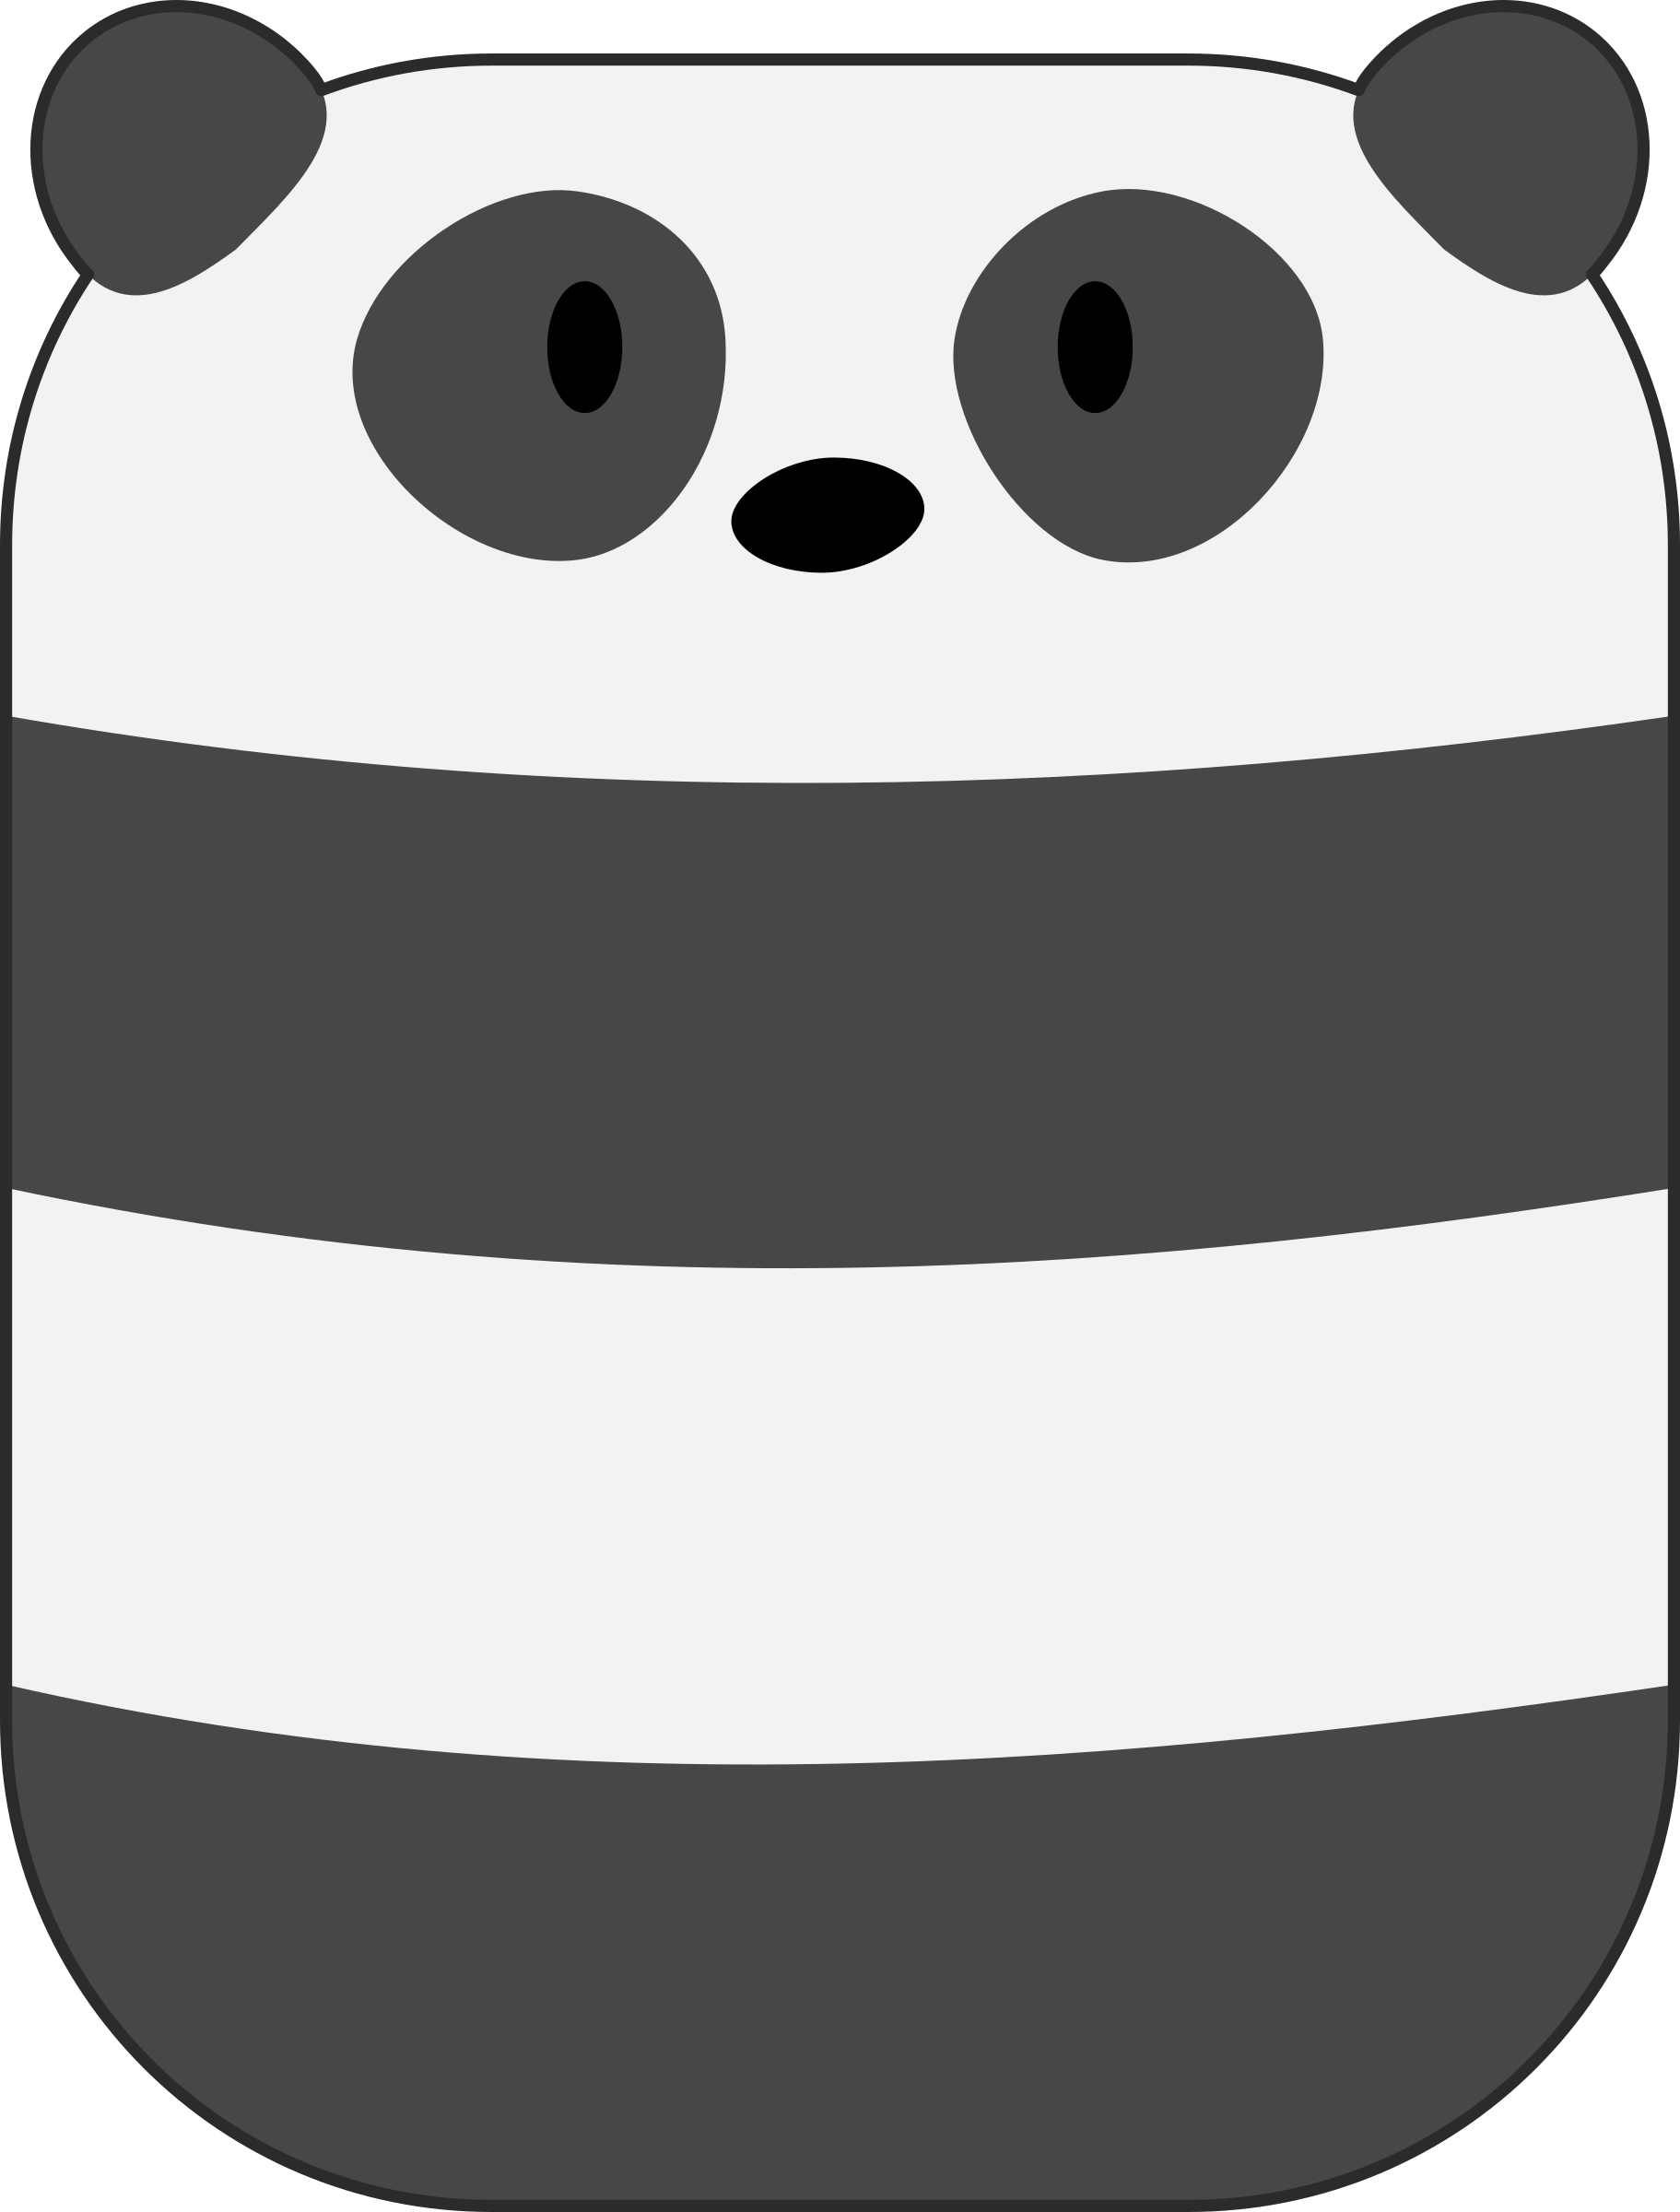 Curved Cute Minimal Panda Bear by qubodup